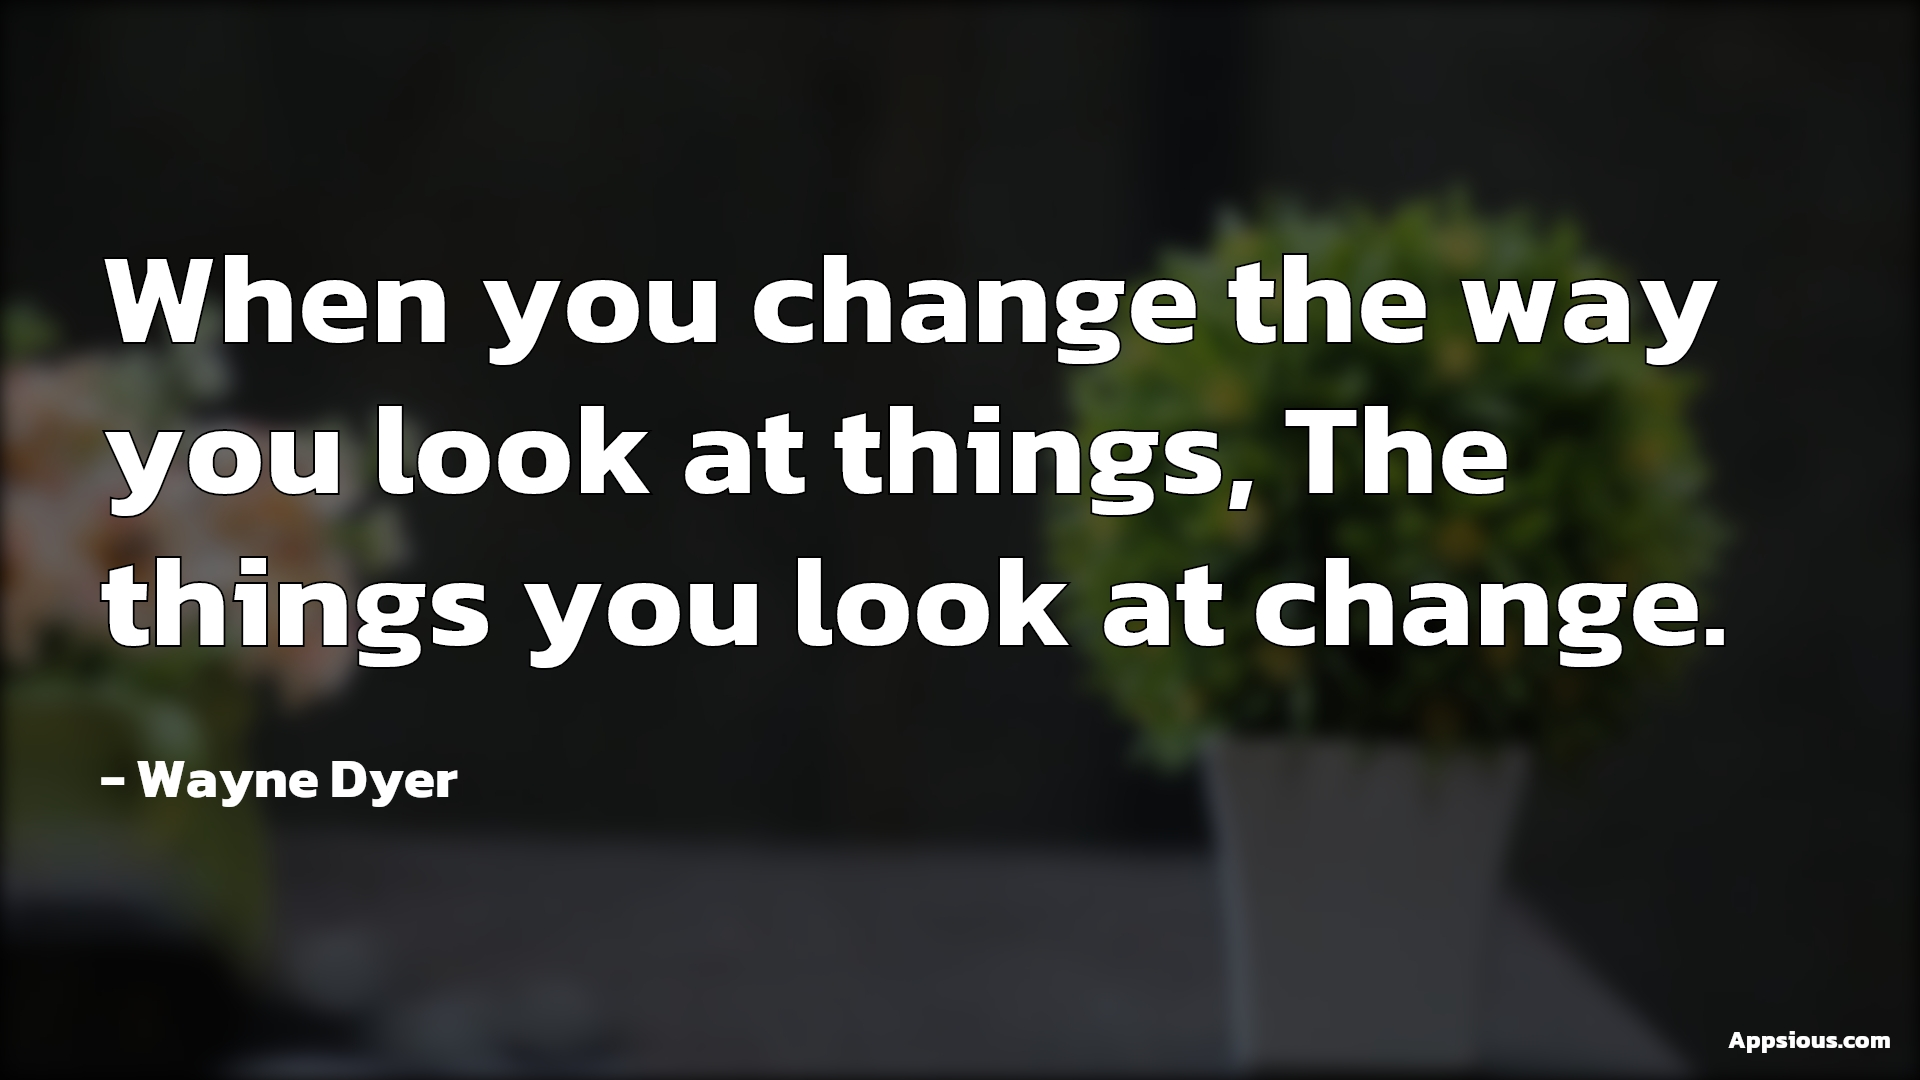 When you change the way you look at things, The things you look at change.